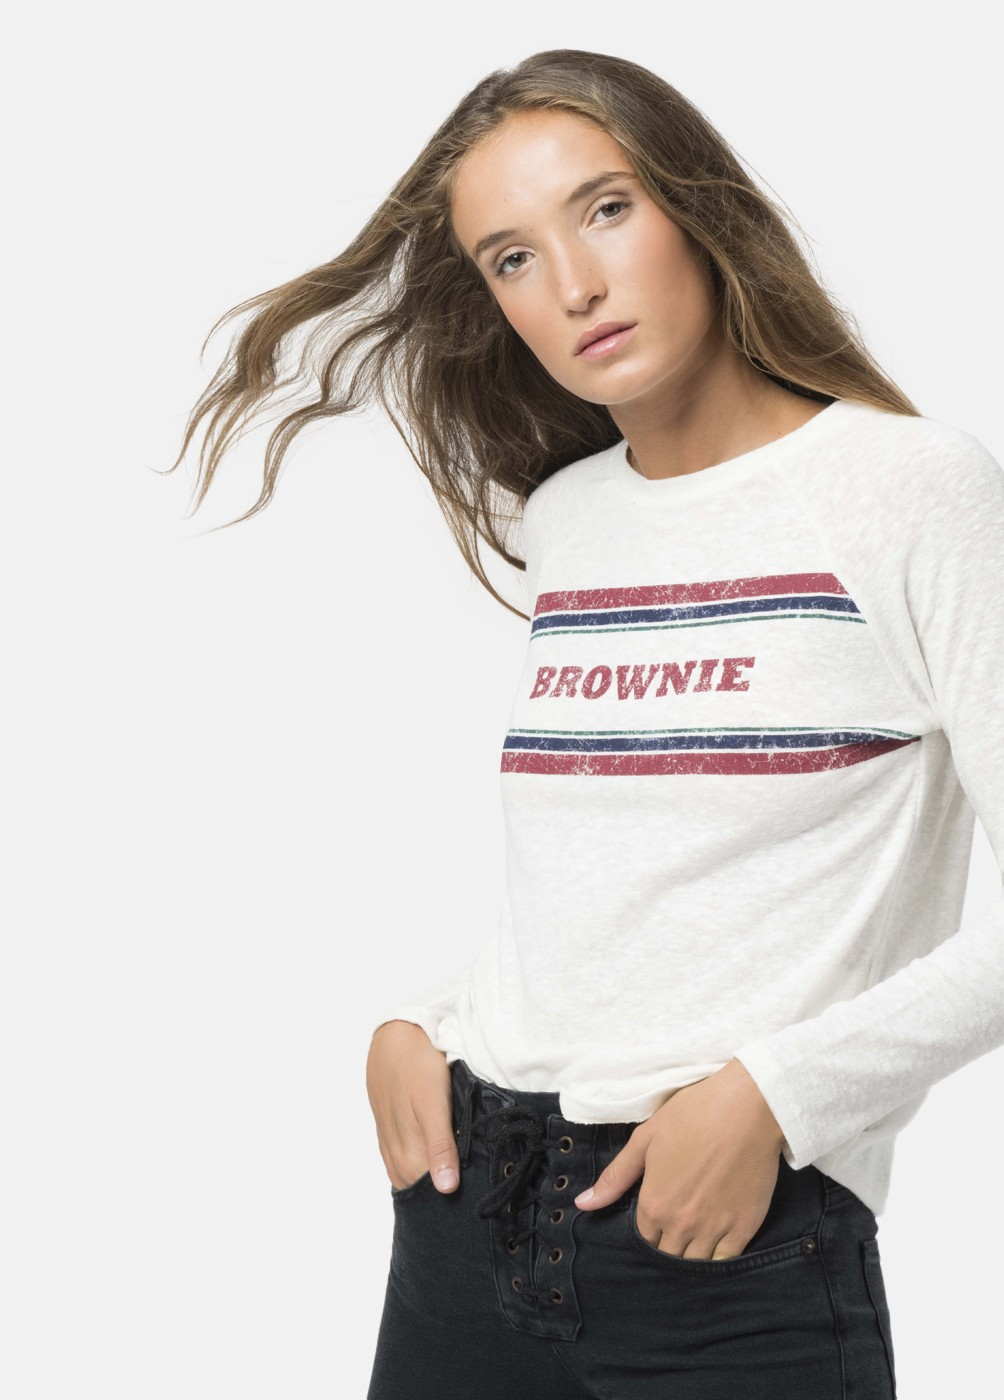 STRIP BROWNIE STRIPED SHIRT